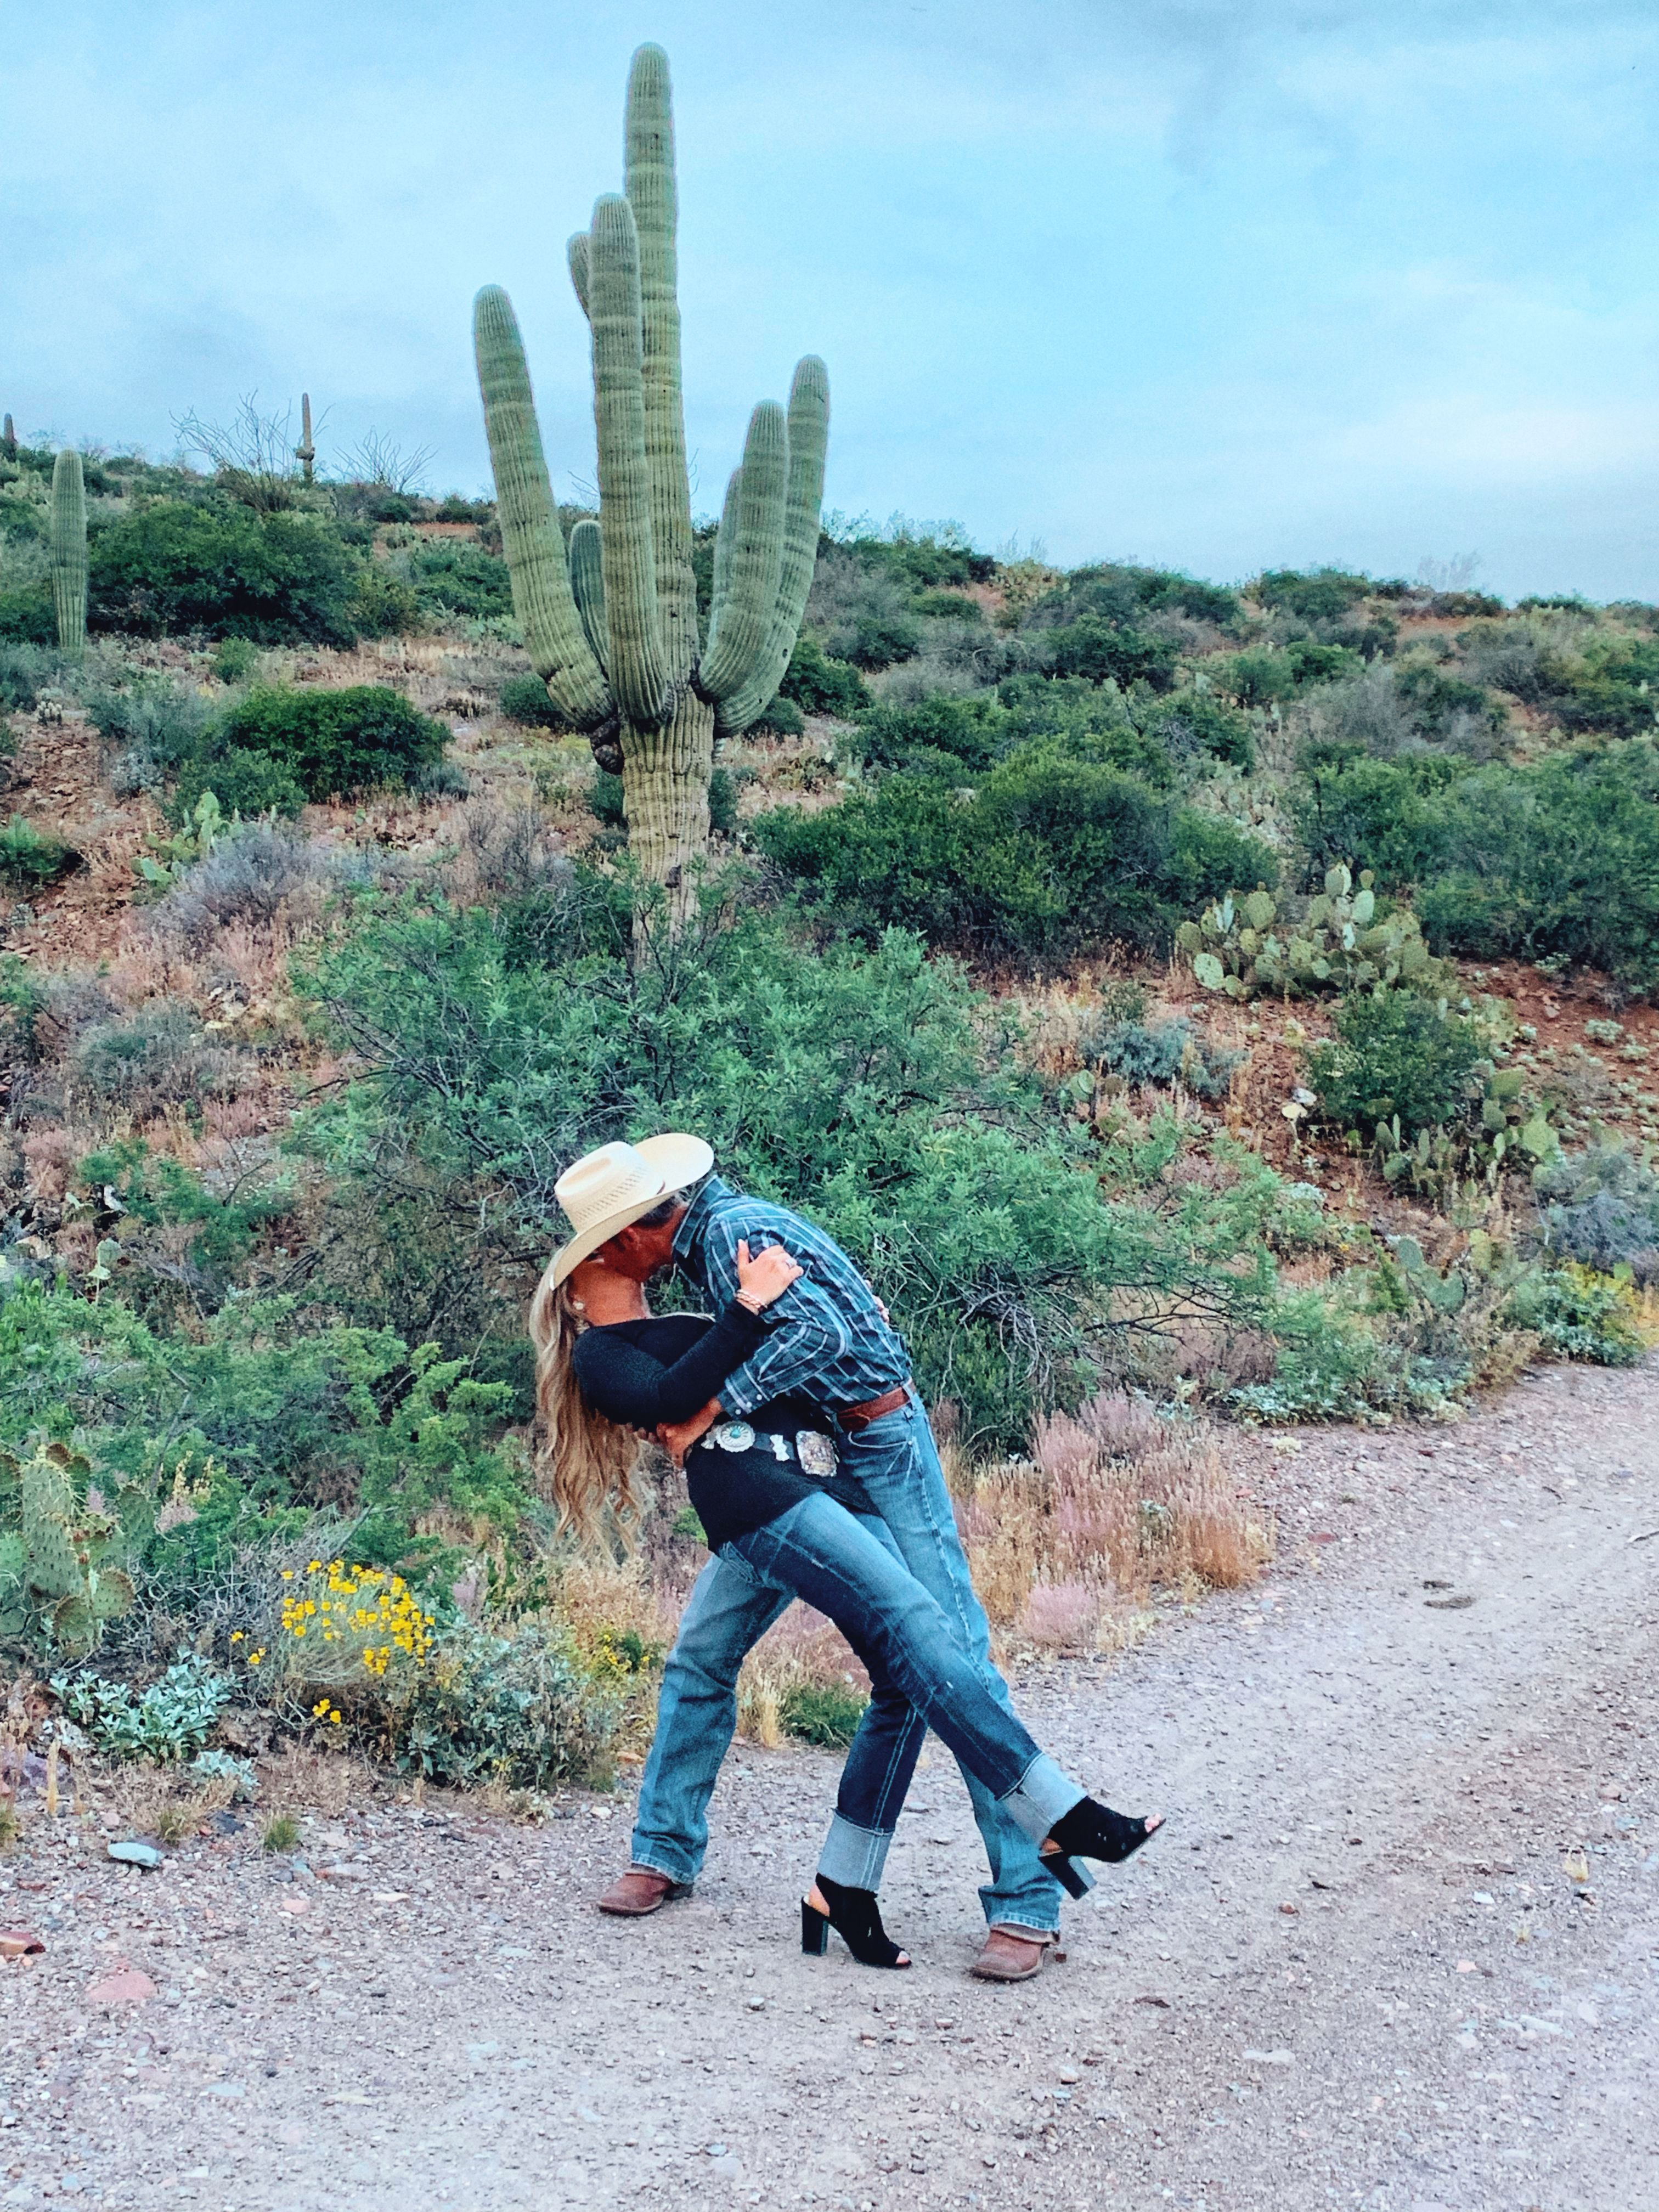 Cowboy And Cowgirl In The Arizona Desert